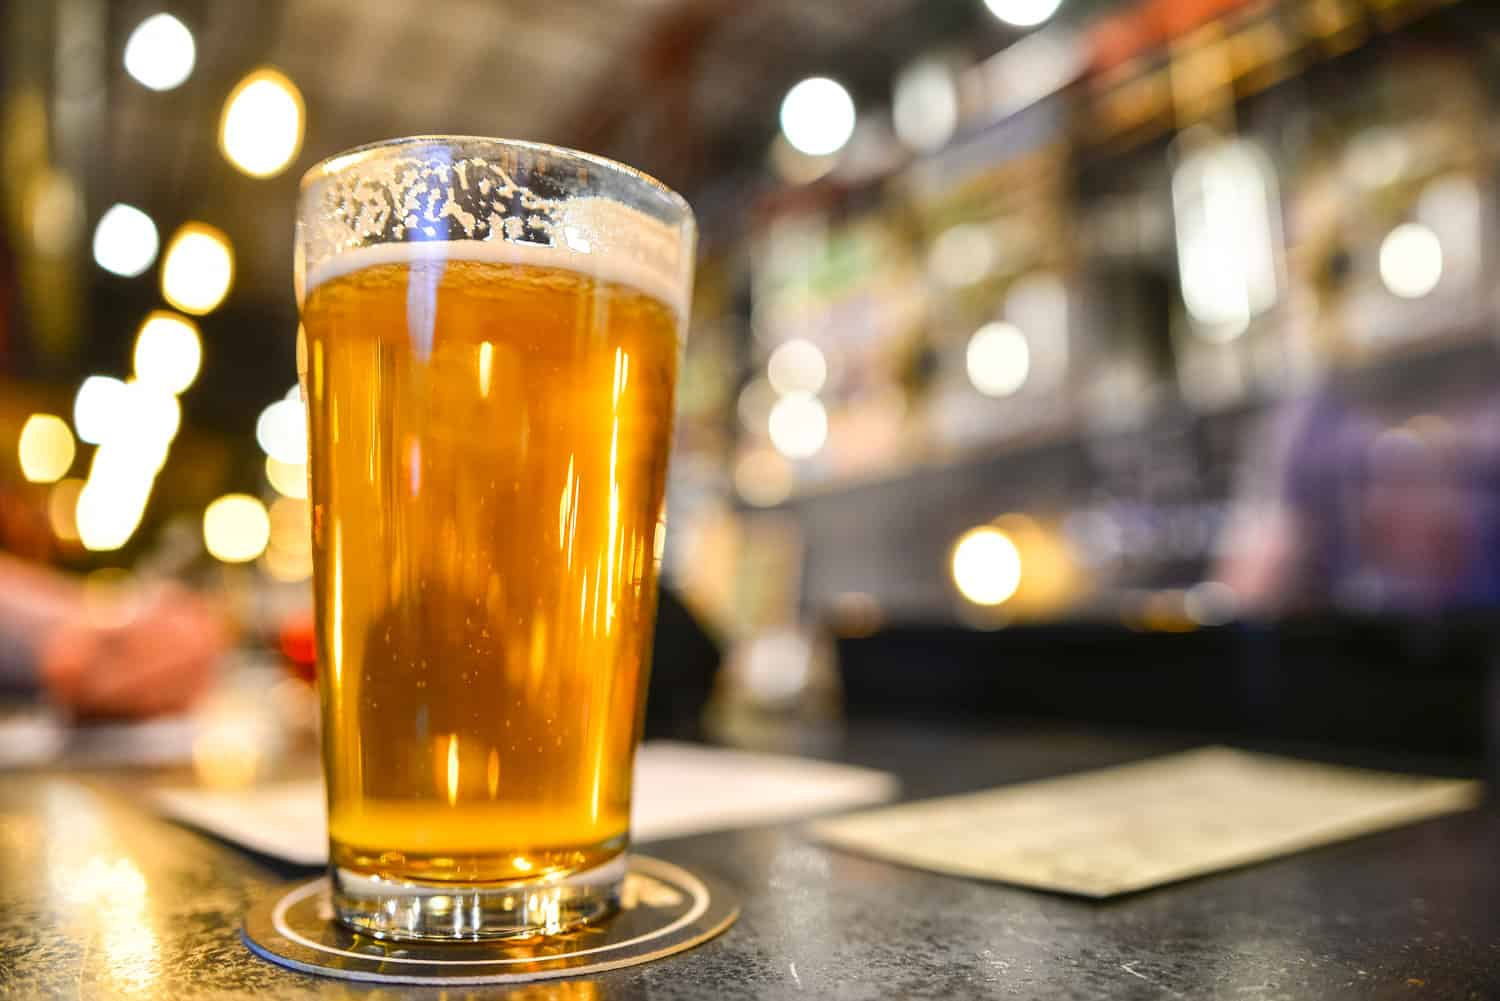 A Pint of Craft Beer on Trendy Brewery Bar